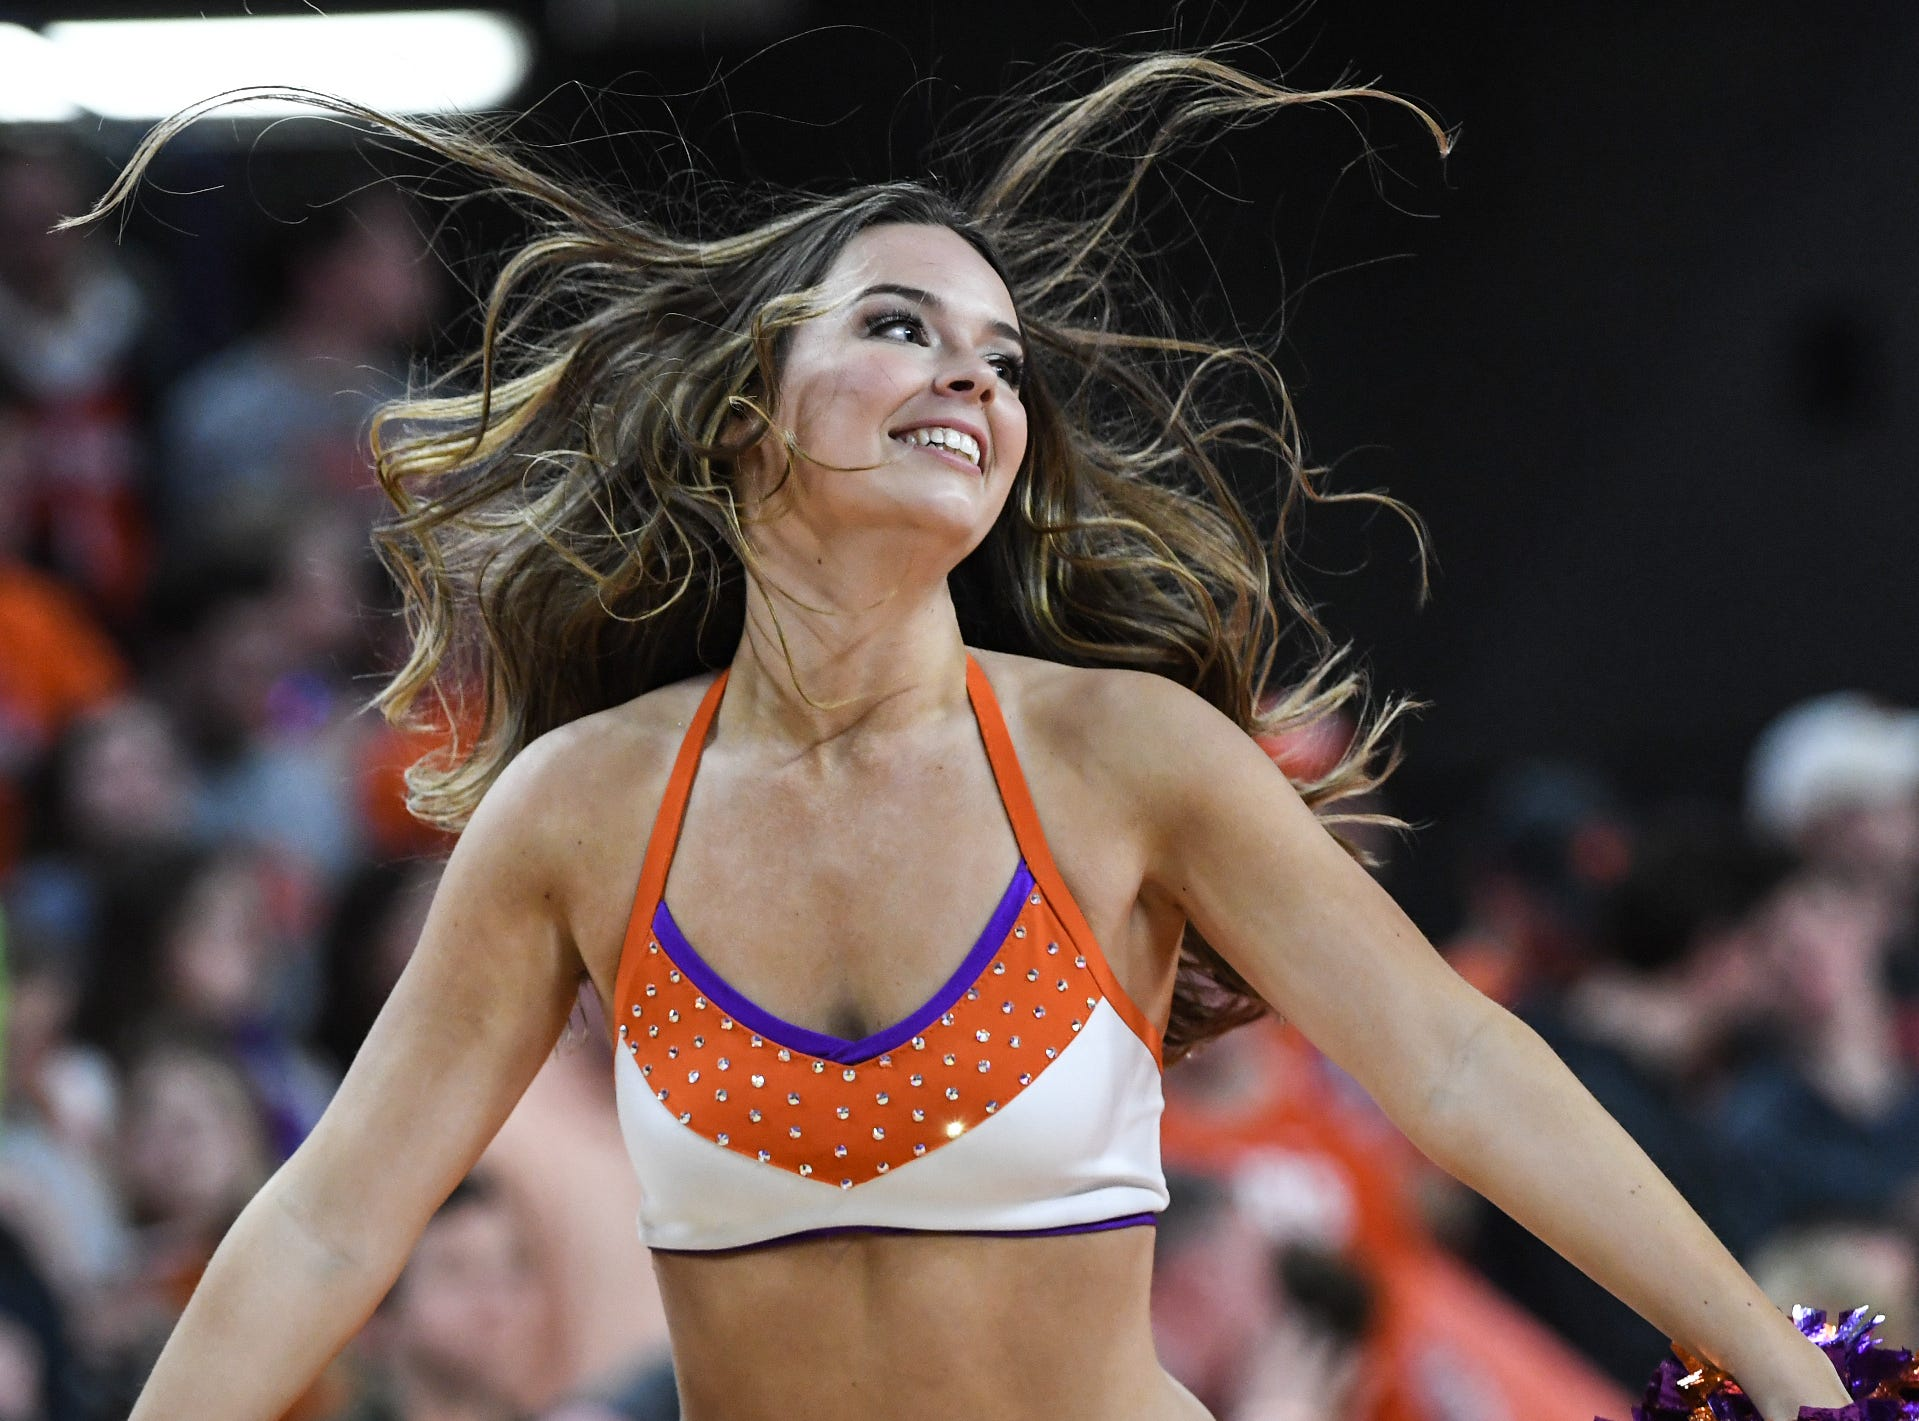 A Rally Cat dances in a break of Clemson playing Florida State during the second half at Littlejohn Coliseum in Clemson Tuesday, February 19, 2019.